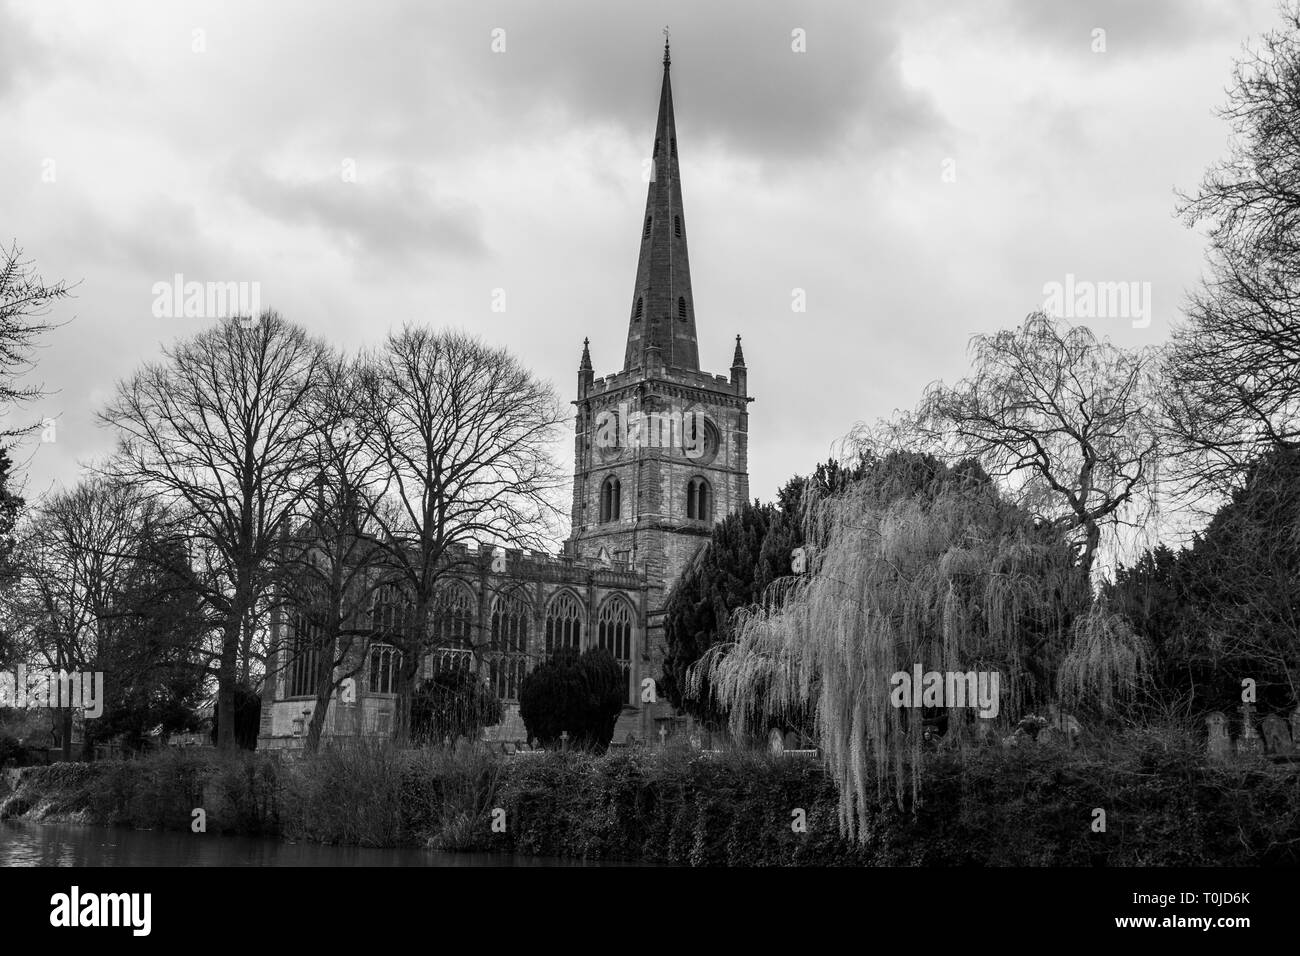 River view of Holy Trinity Church, Stratford Upon Avon - England UK - Stock Image